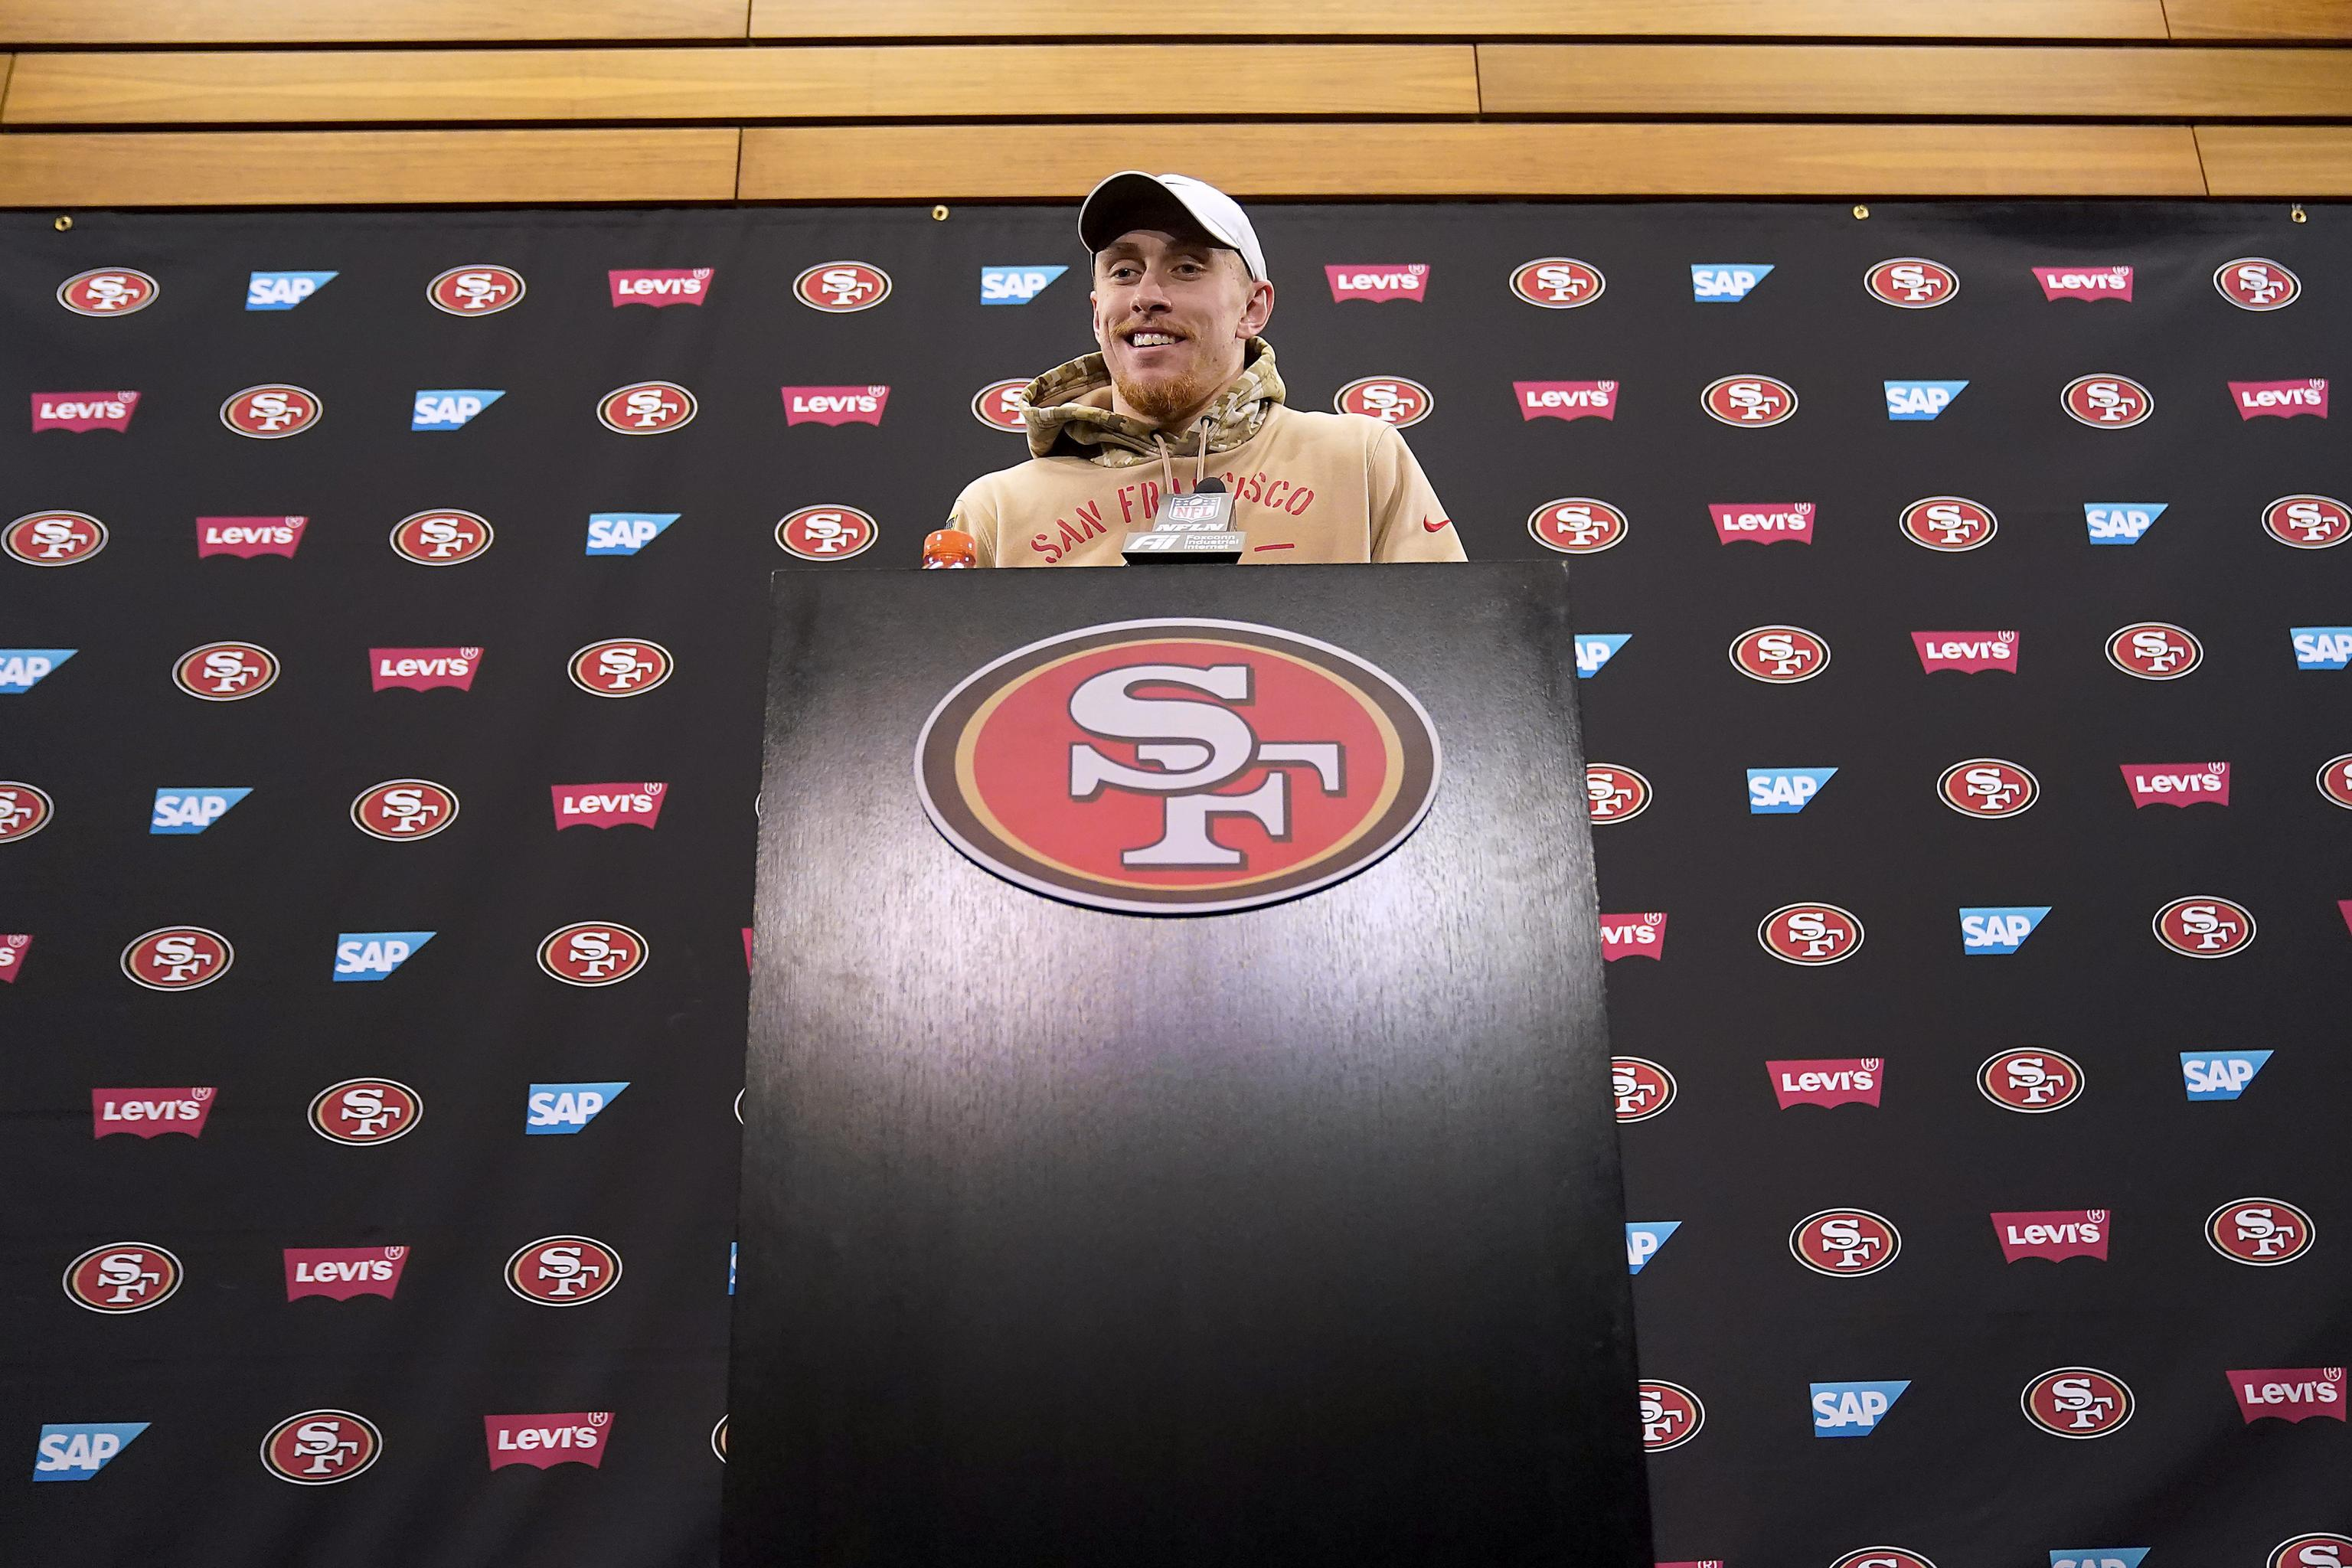 Super Bowl 2020 Date Media Day Schedule For 49ers Vs Chiefs Bleacher Report Latest News Videos And Highlights